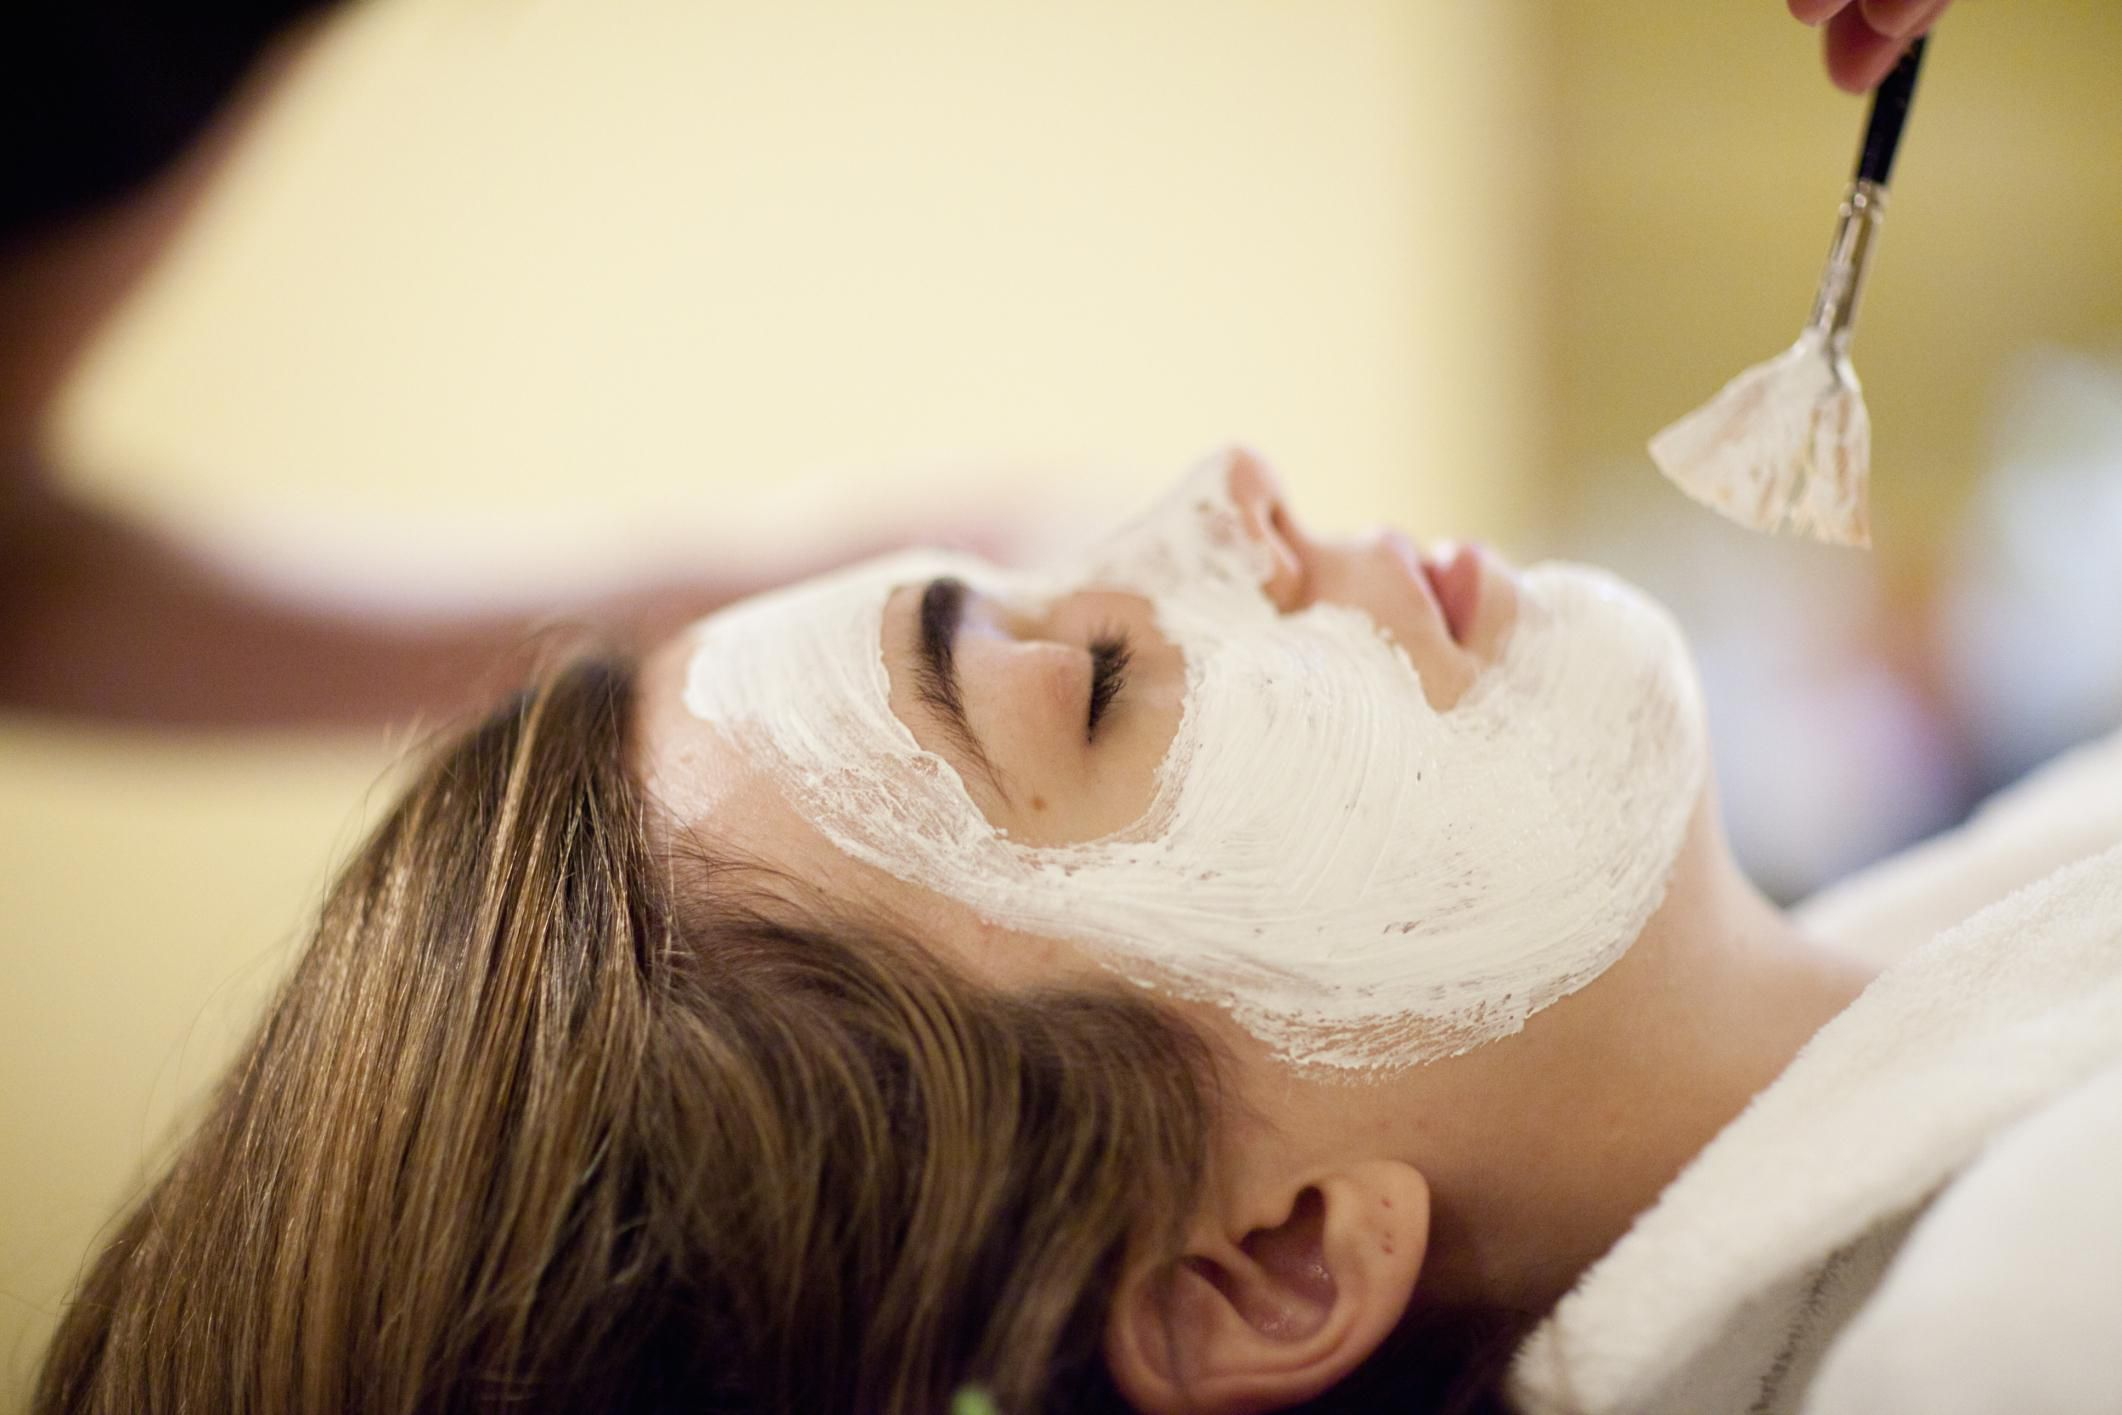 fayetteville-facial-skin-care-treatment-glamour-model